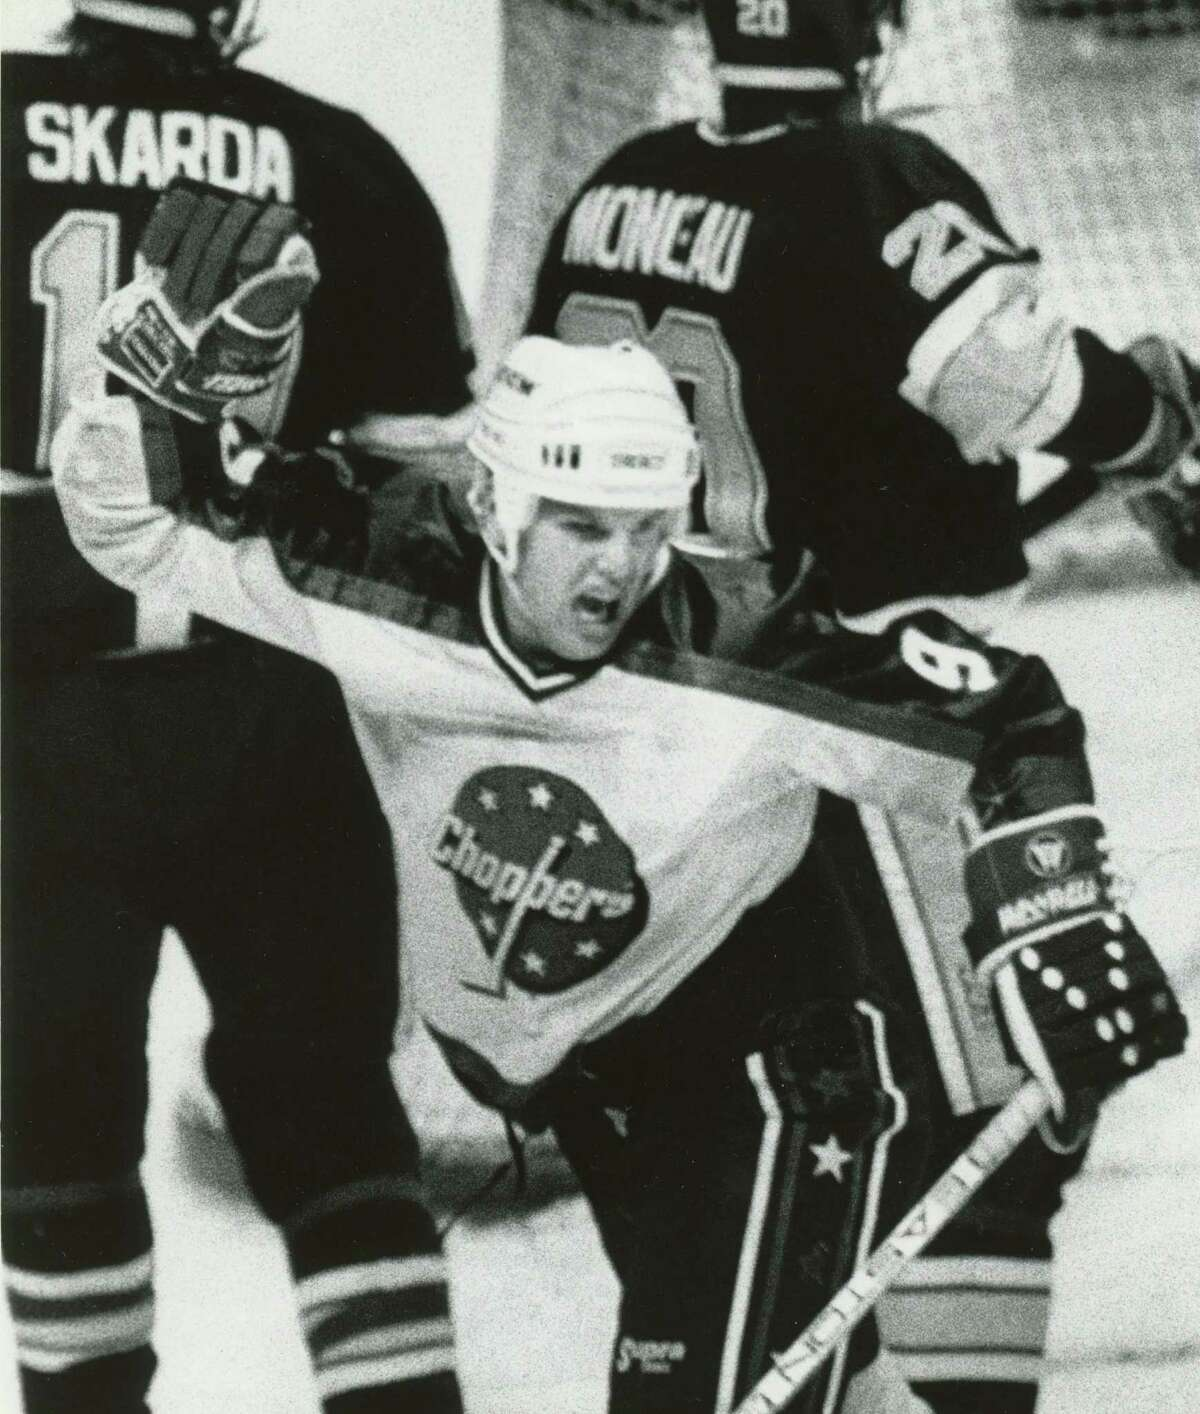 Stuart Burnie of the Choppers reacts after scoring during game action on Dec. 4, 1990, at the Knickerbocker Arena in Albany, N.Y. The goal was disqualified by officials. (John Carl D'Annibale/Times Union)